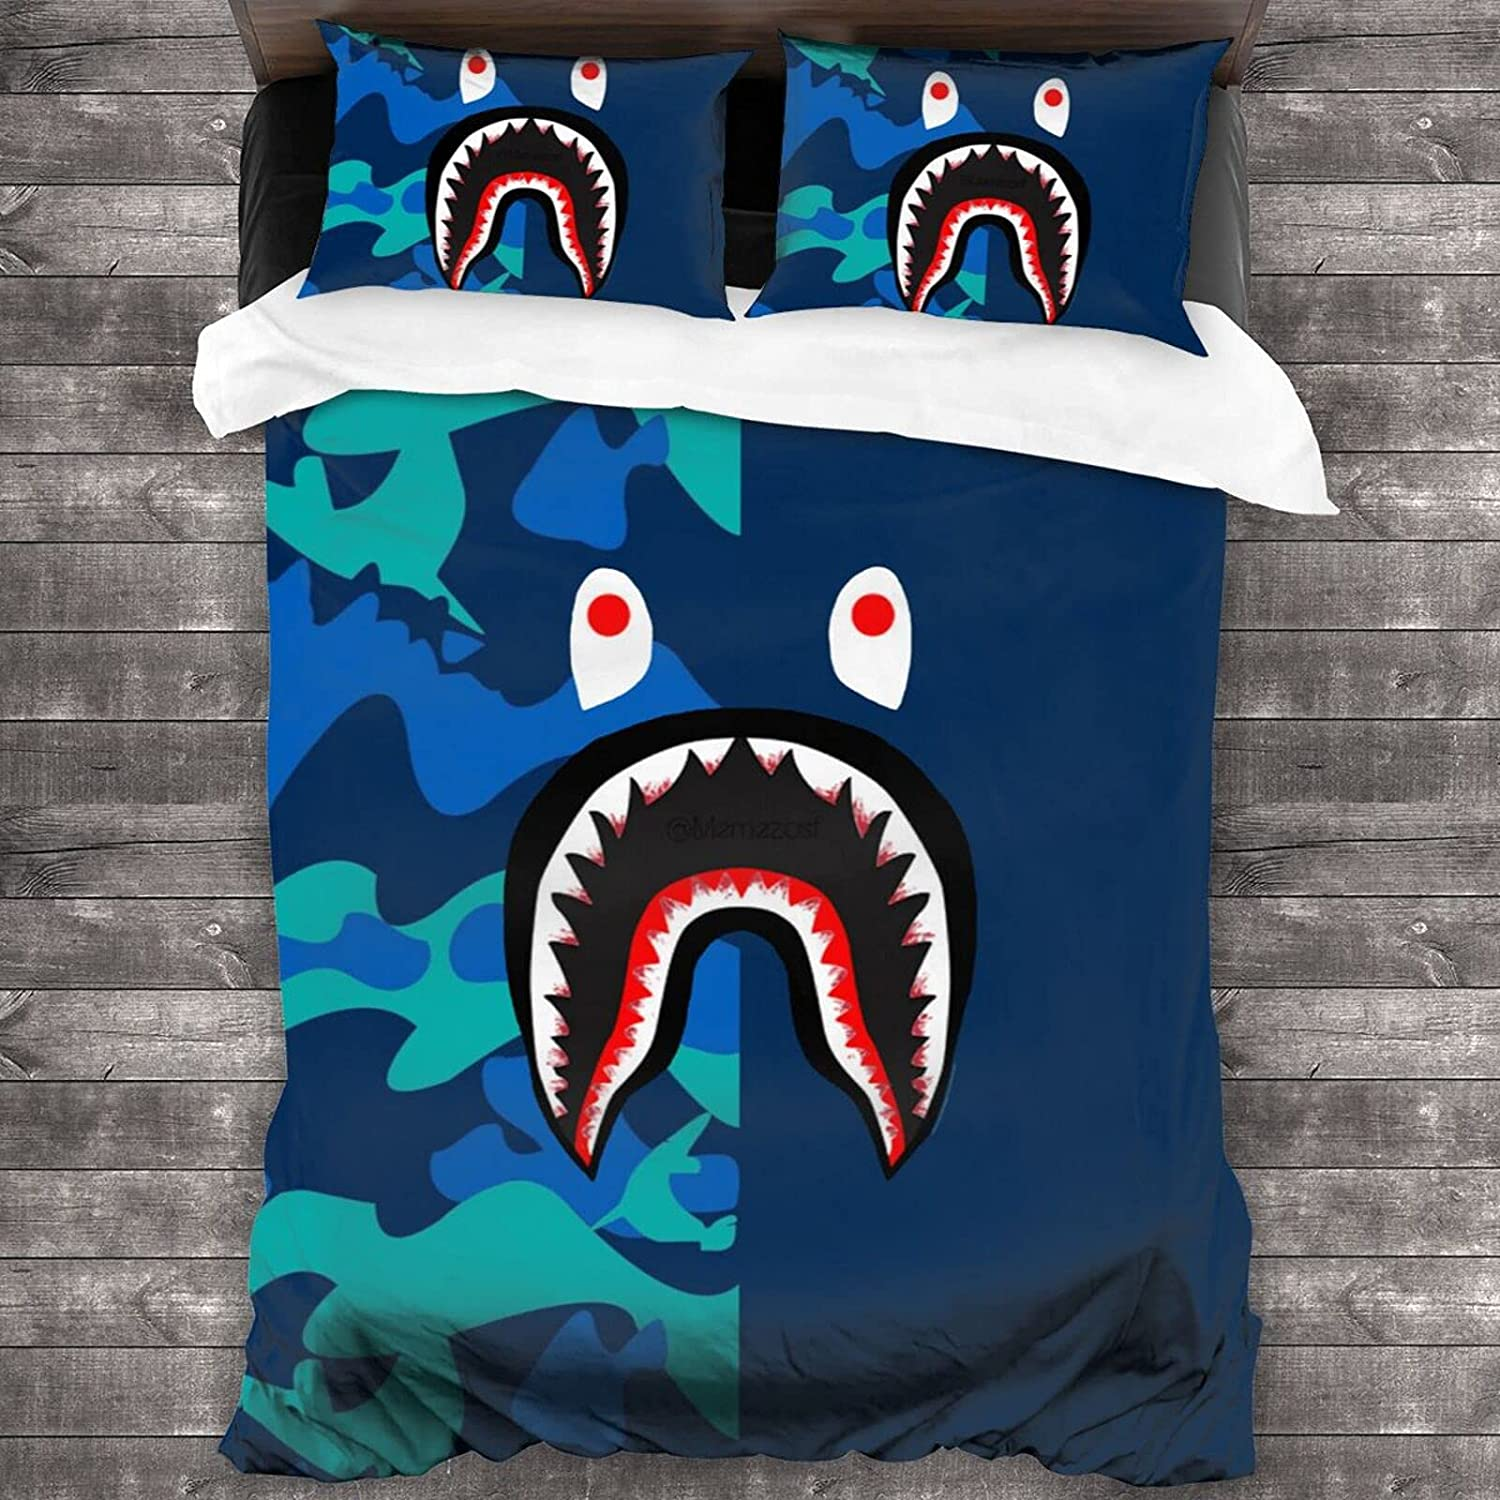 Bape Logo Bedding 3 Piece Twin Set Sale Special New item Price with Case 2 Pillow Comforter